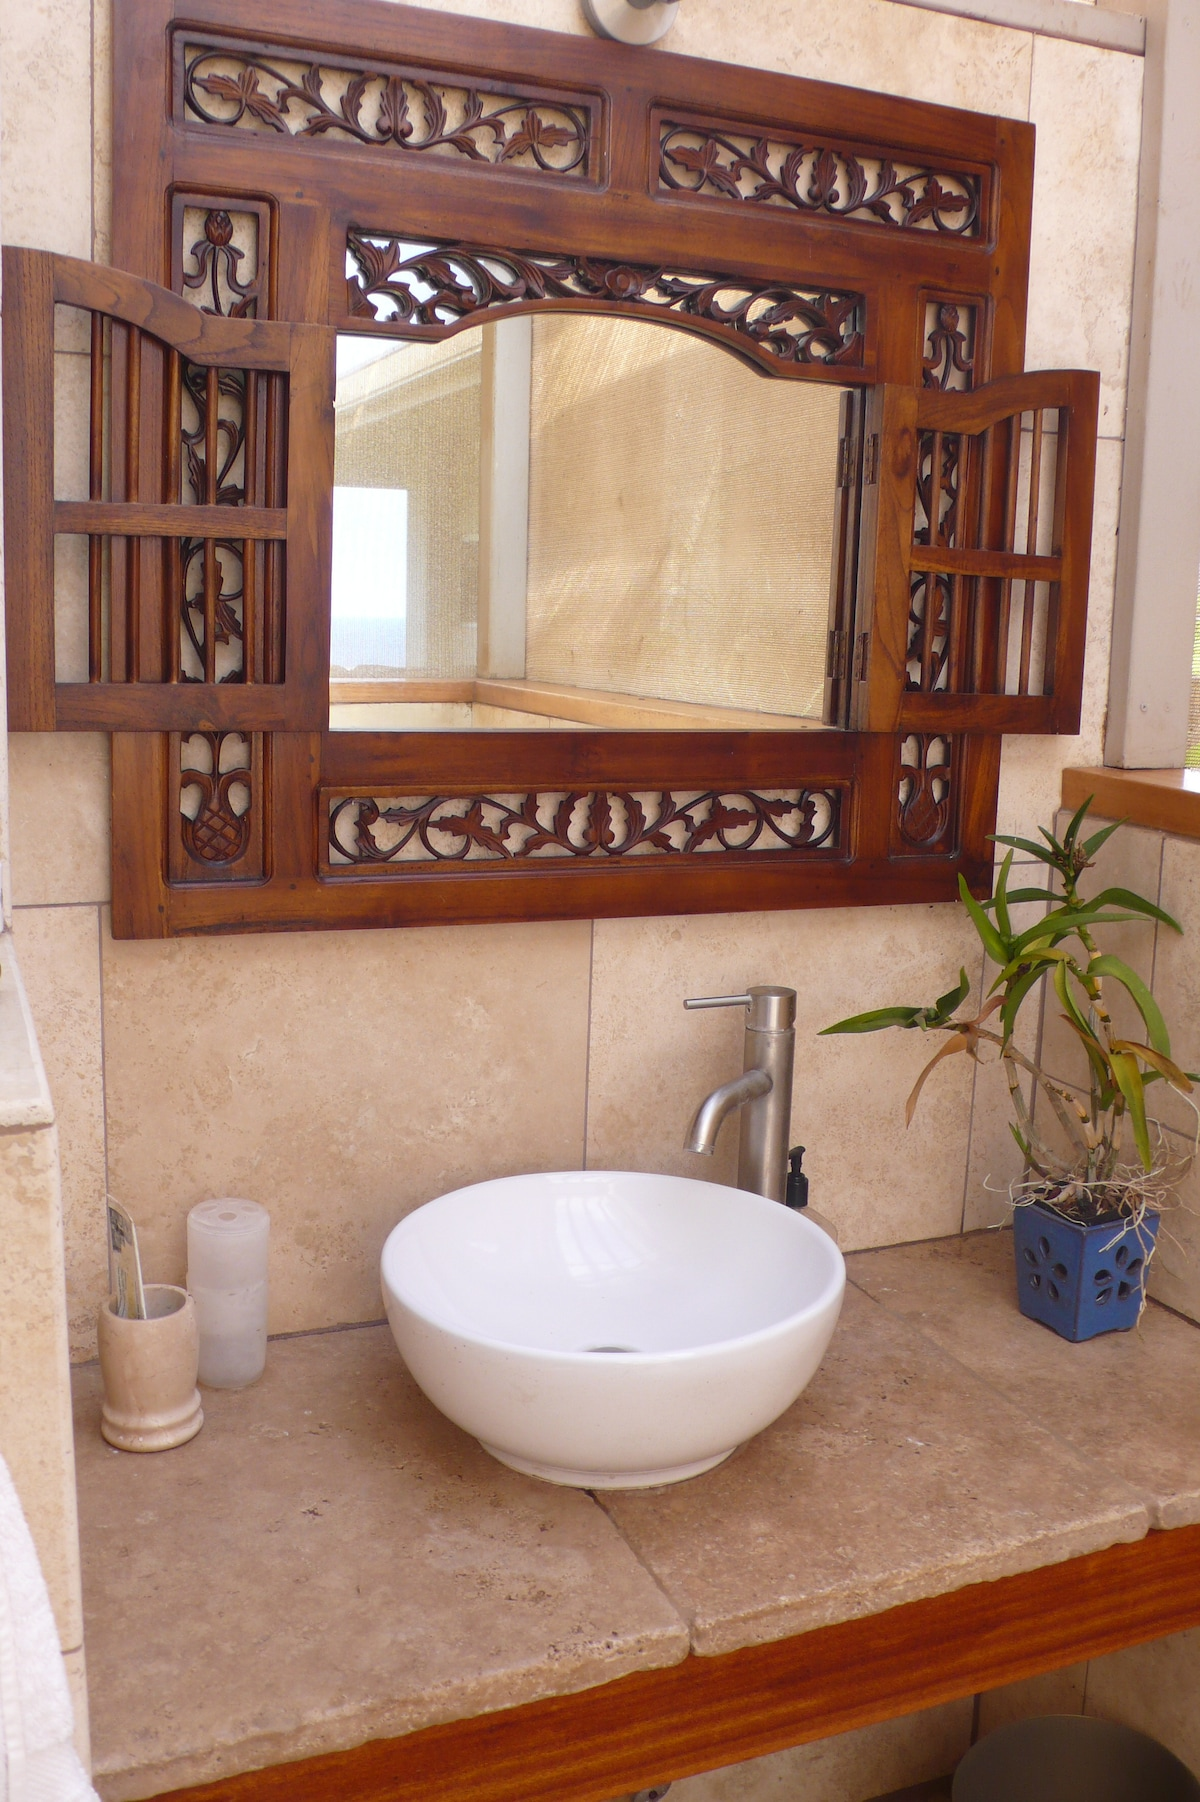 Private travertine bathroom vanity